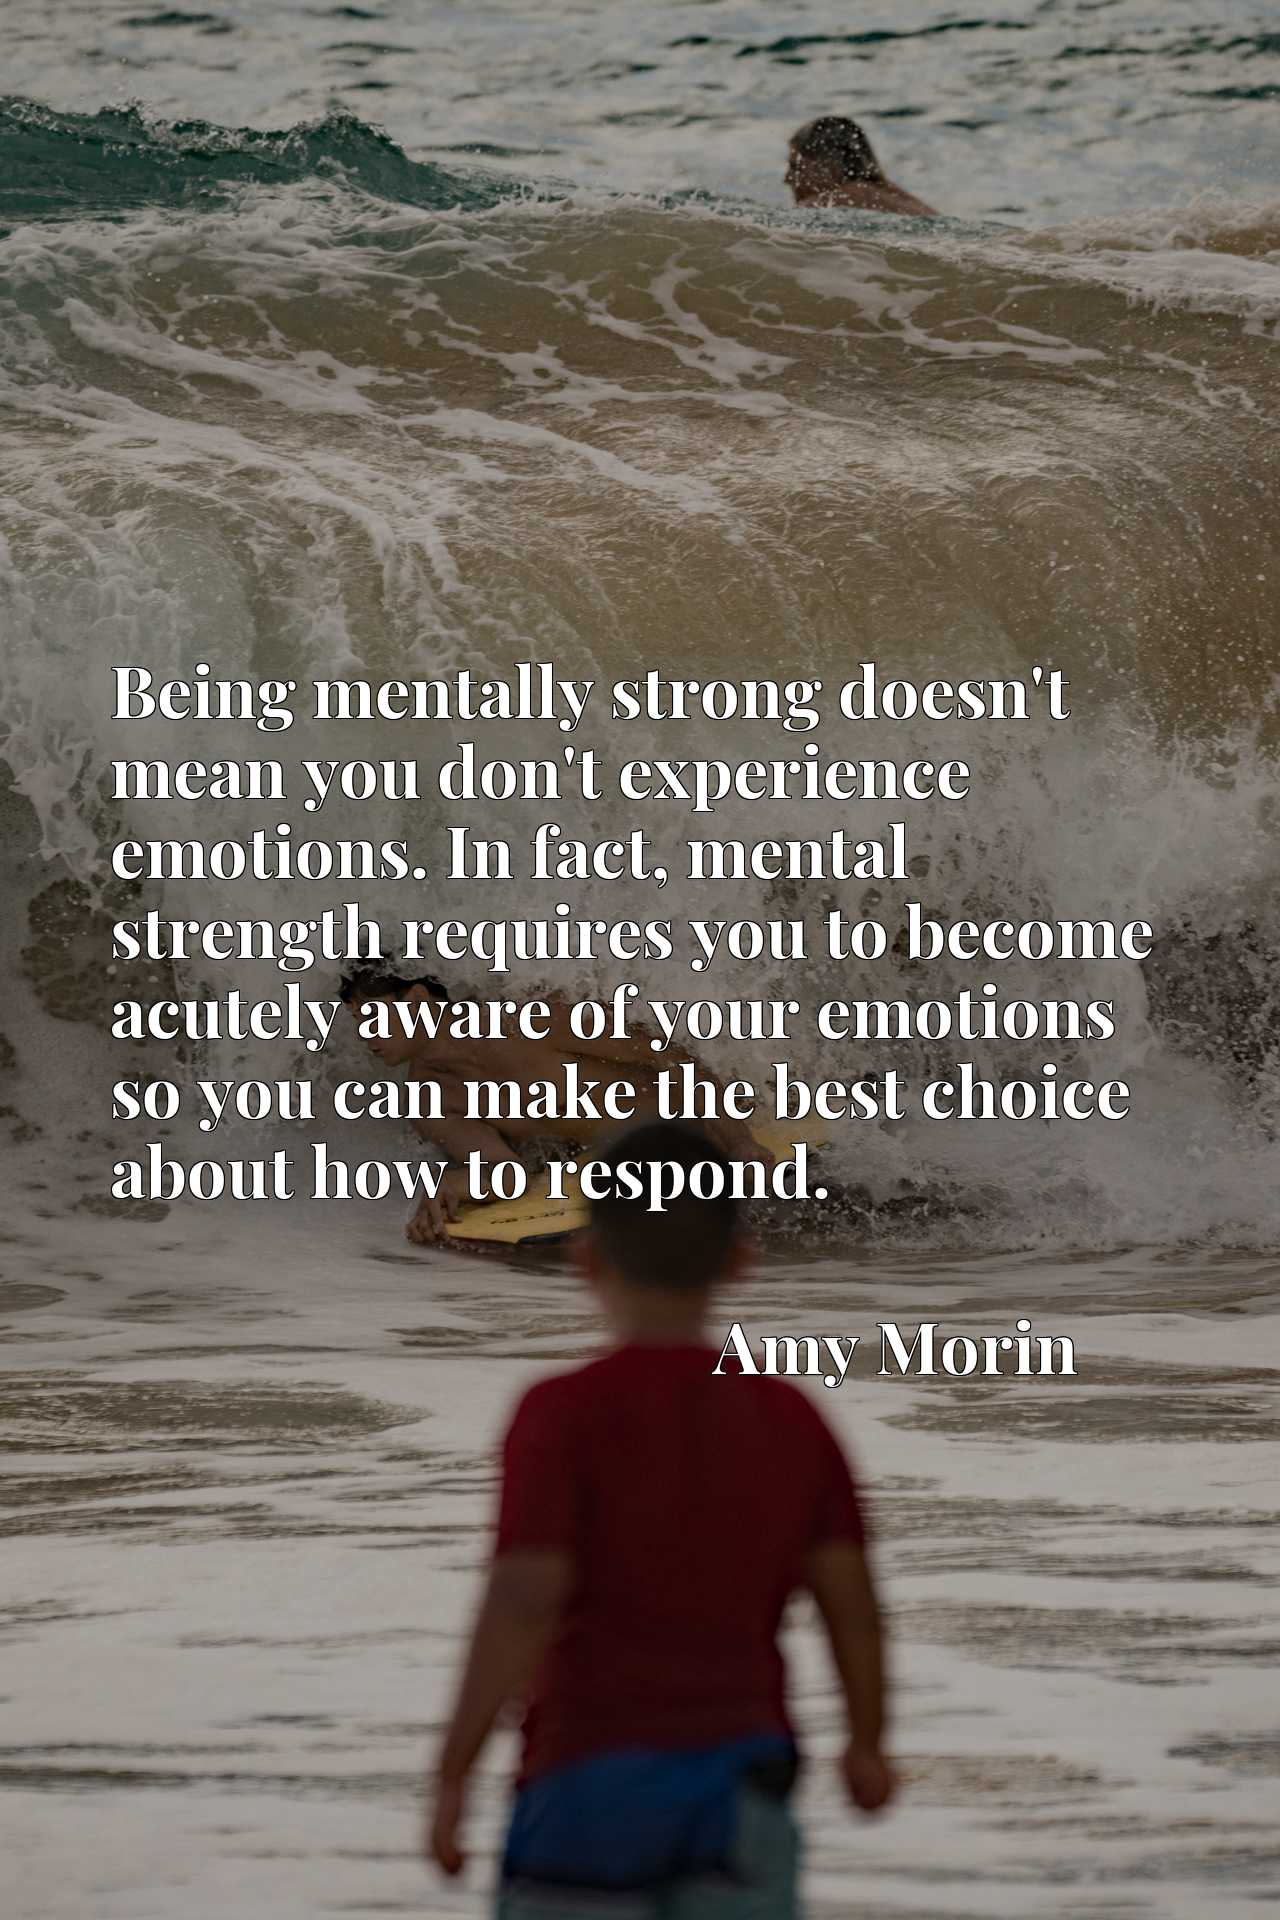 Being mentally strong doesn't mean you don't experience emotions. In fact, mental strength requires you to become acutely aware of your emotions so you can make the best choice about how to respond.